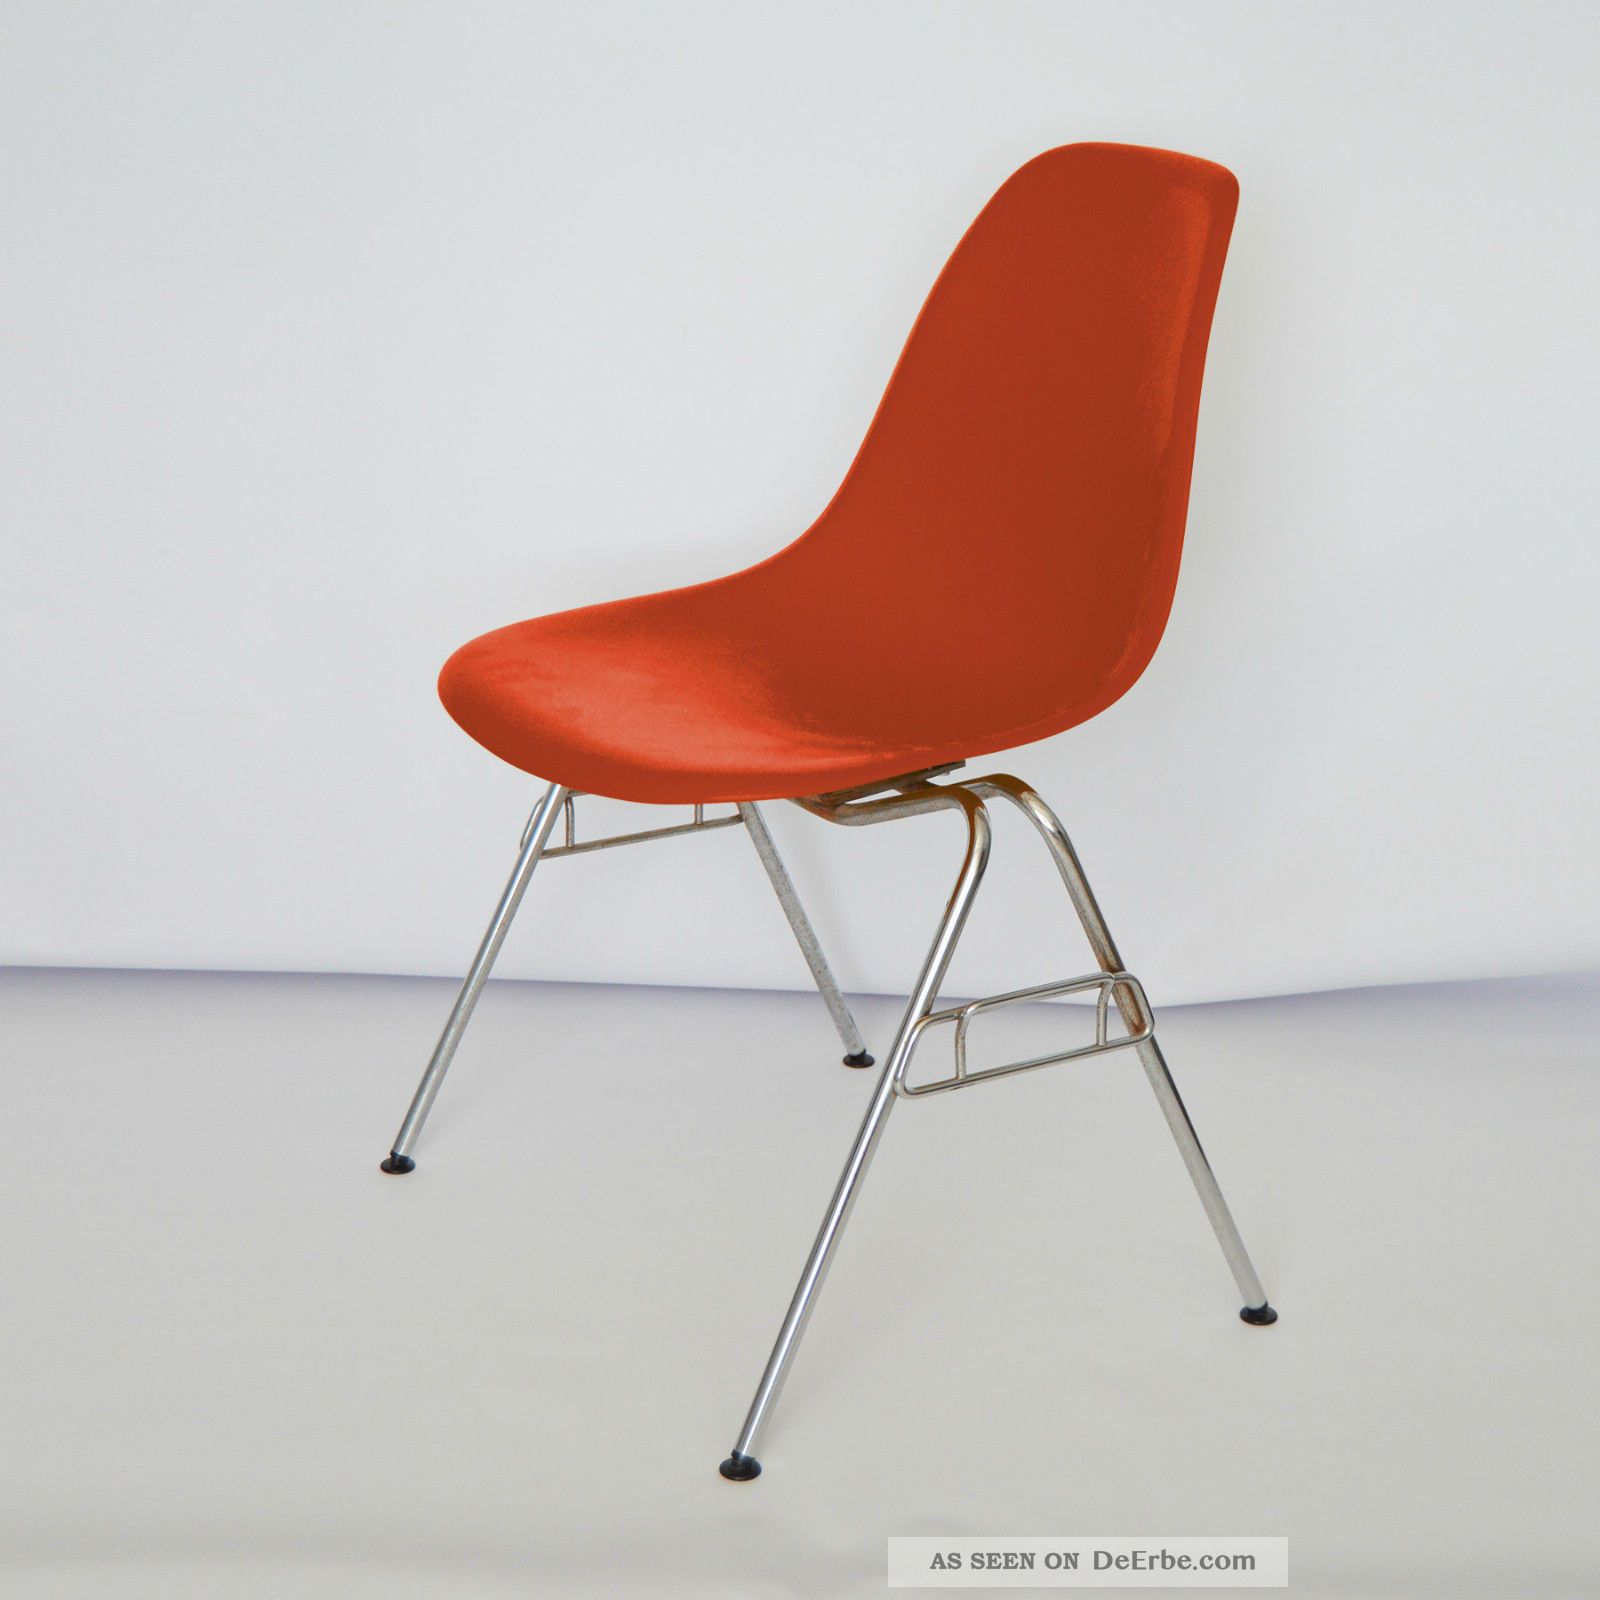 vitra eames plastic side chair dss stapelbar in vielen farben. Black Bedroom Furniture Sets. Home Design Ideas